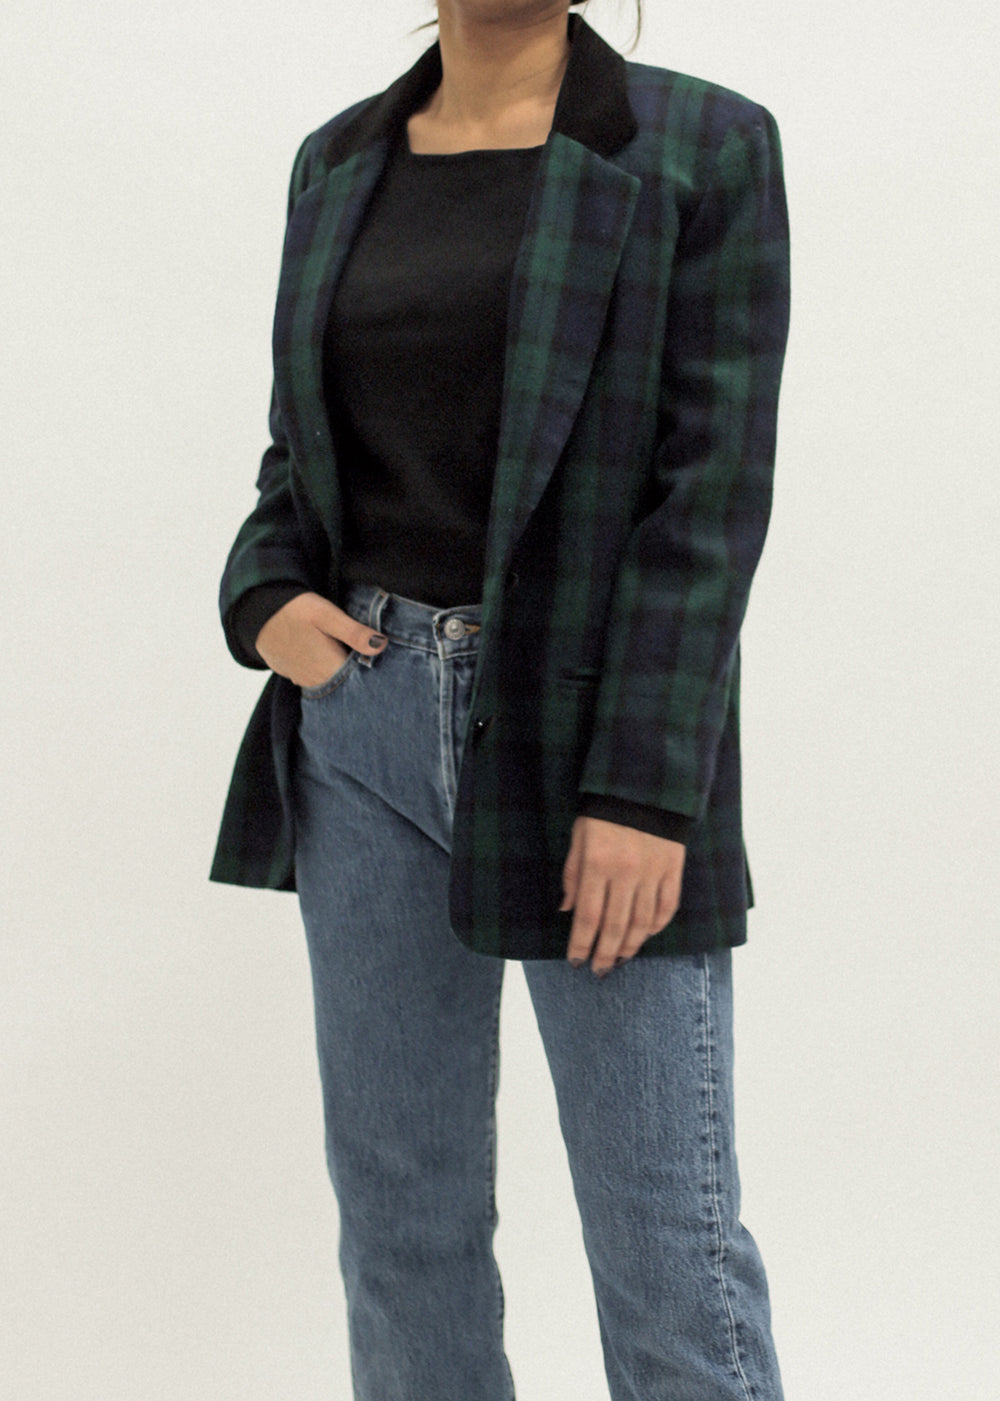 Pre by New Classics Vintage Tartan Blazer with Velvet Collar — Shop sustainable fashion and slow fashion at New Classics Studios